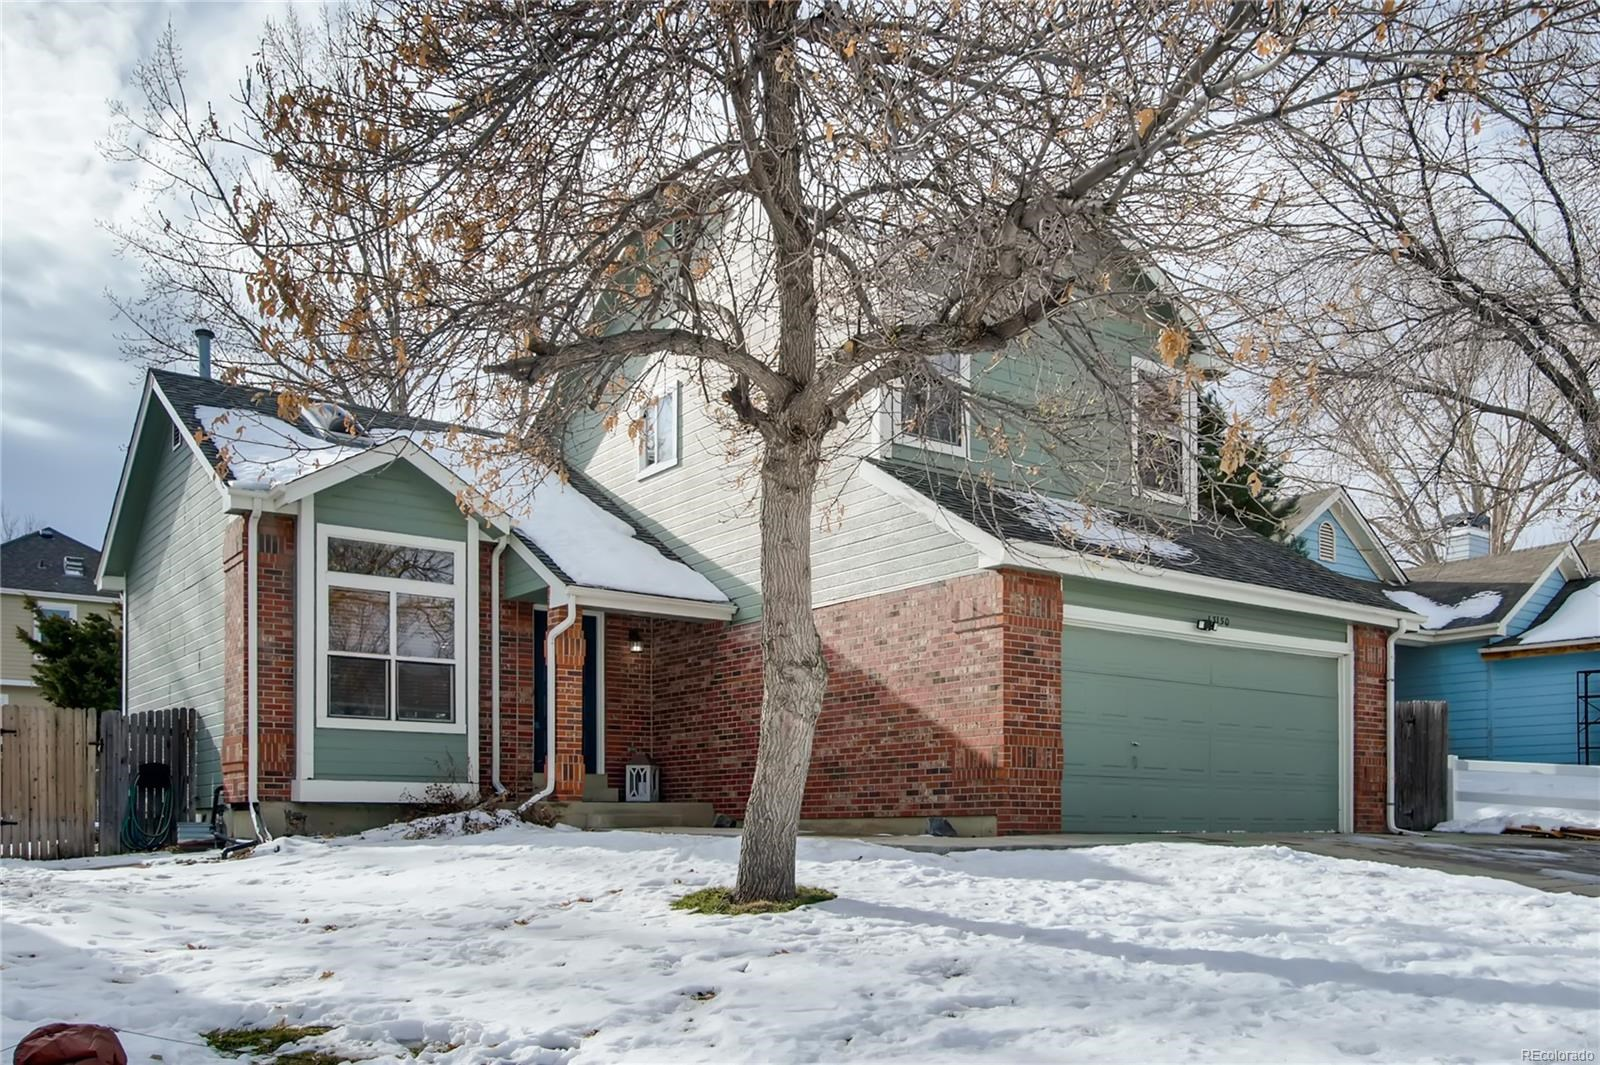 MLS# 3664588 - 2 - 13150 W 63rd Place, Arvada, CO 80004